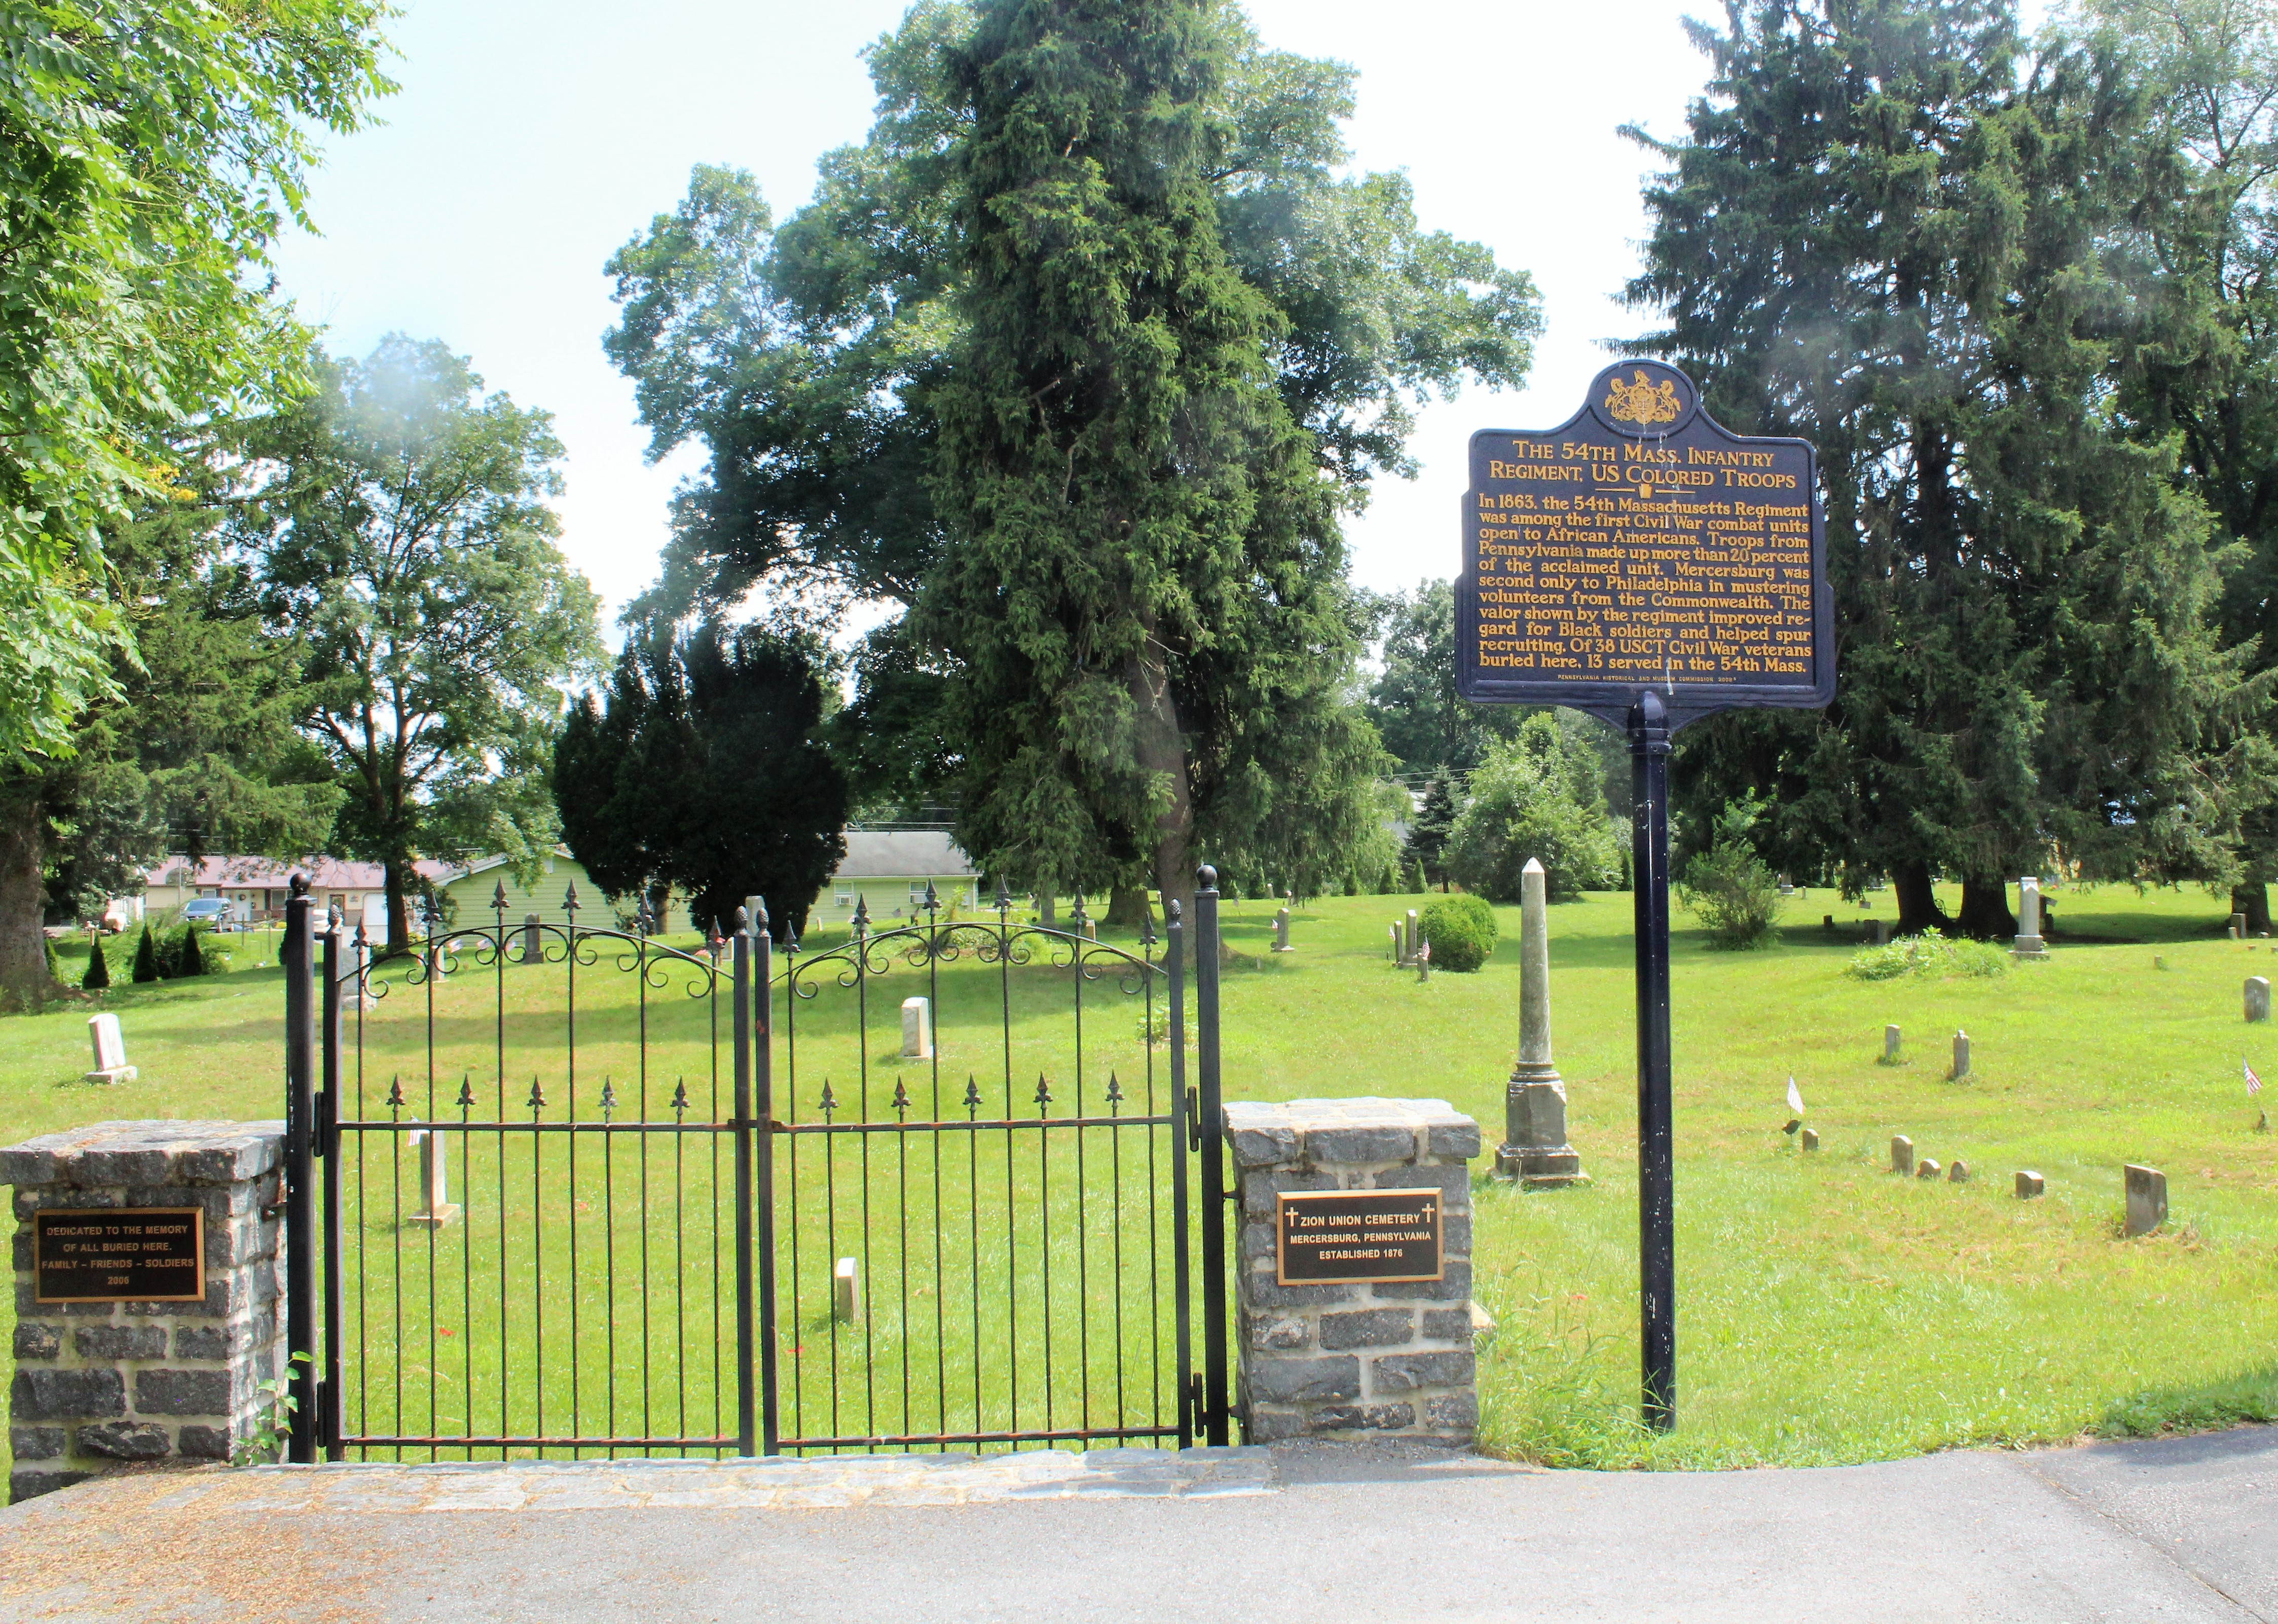 Entrance gate of Zion Union Cemetery, Mercersburg, PA